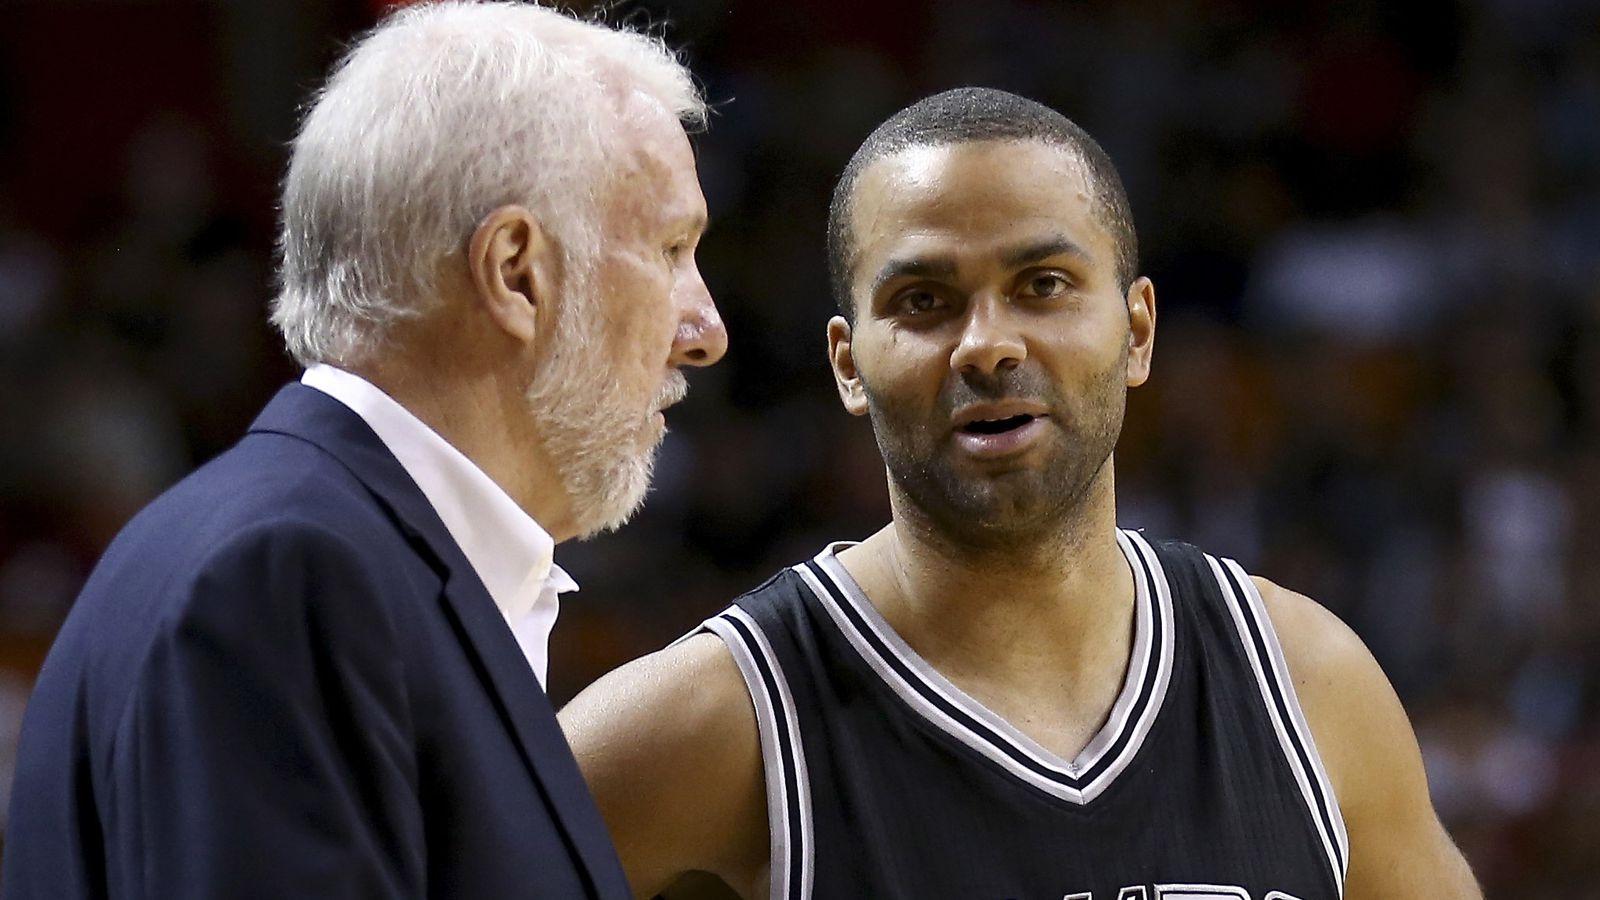 Watch Tony Parker go off against the Nuggets